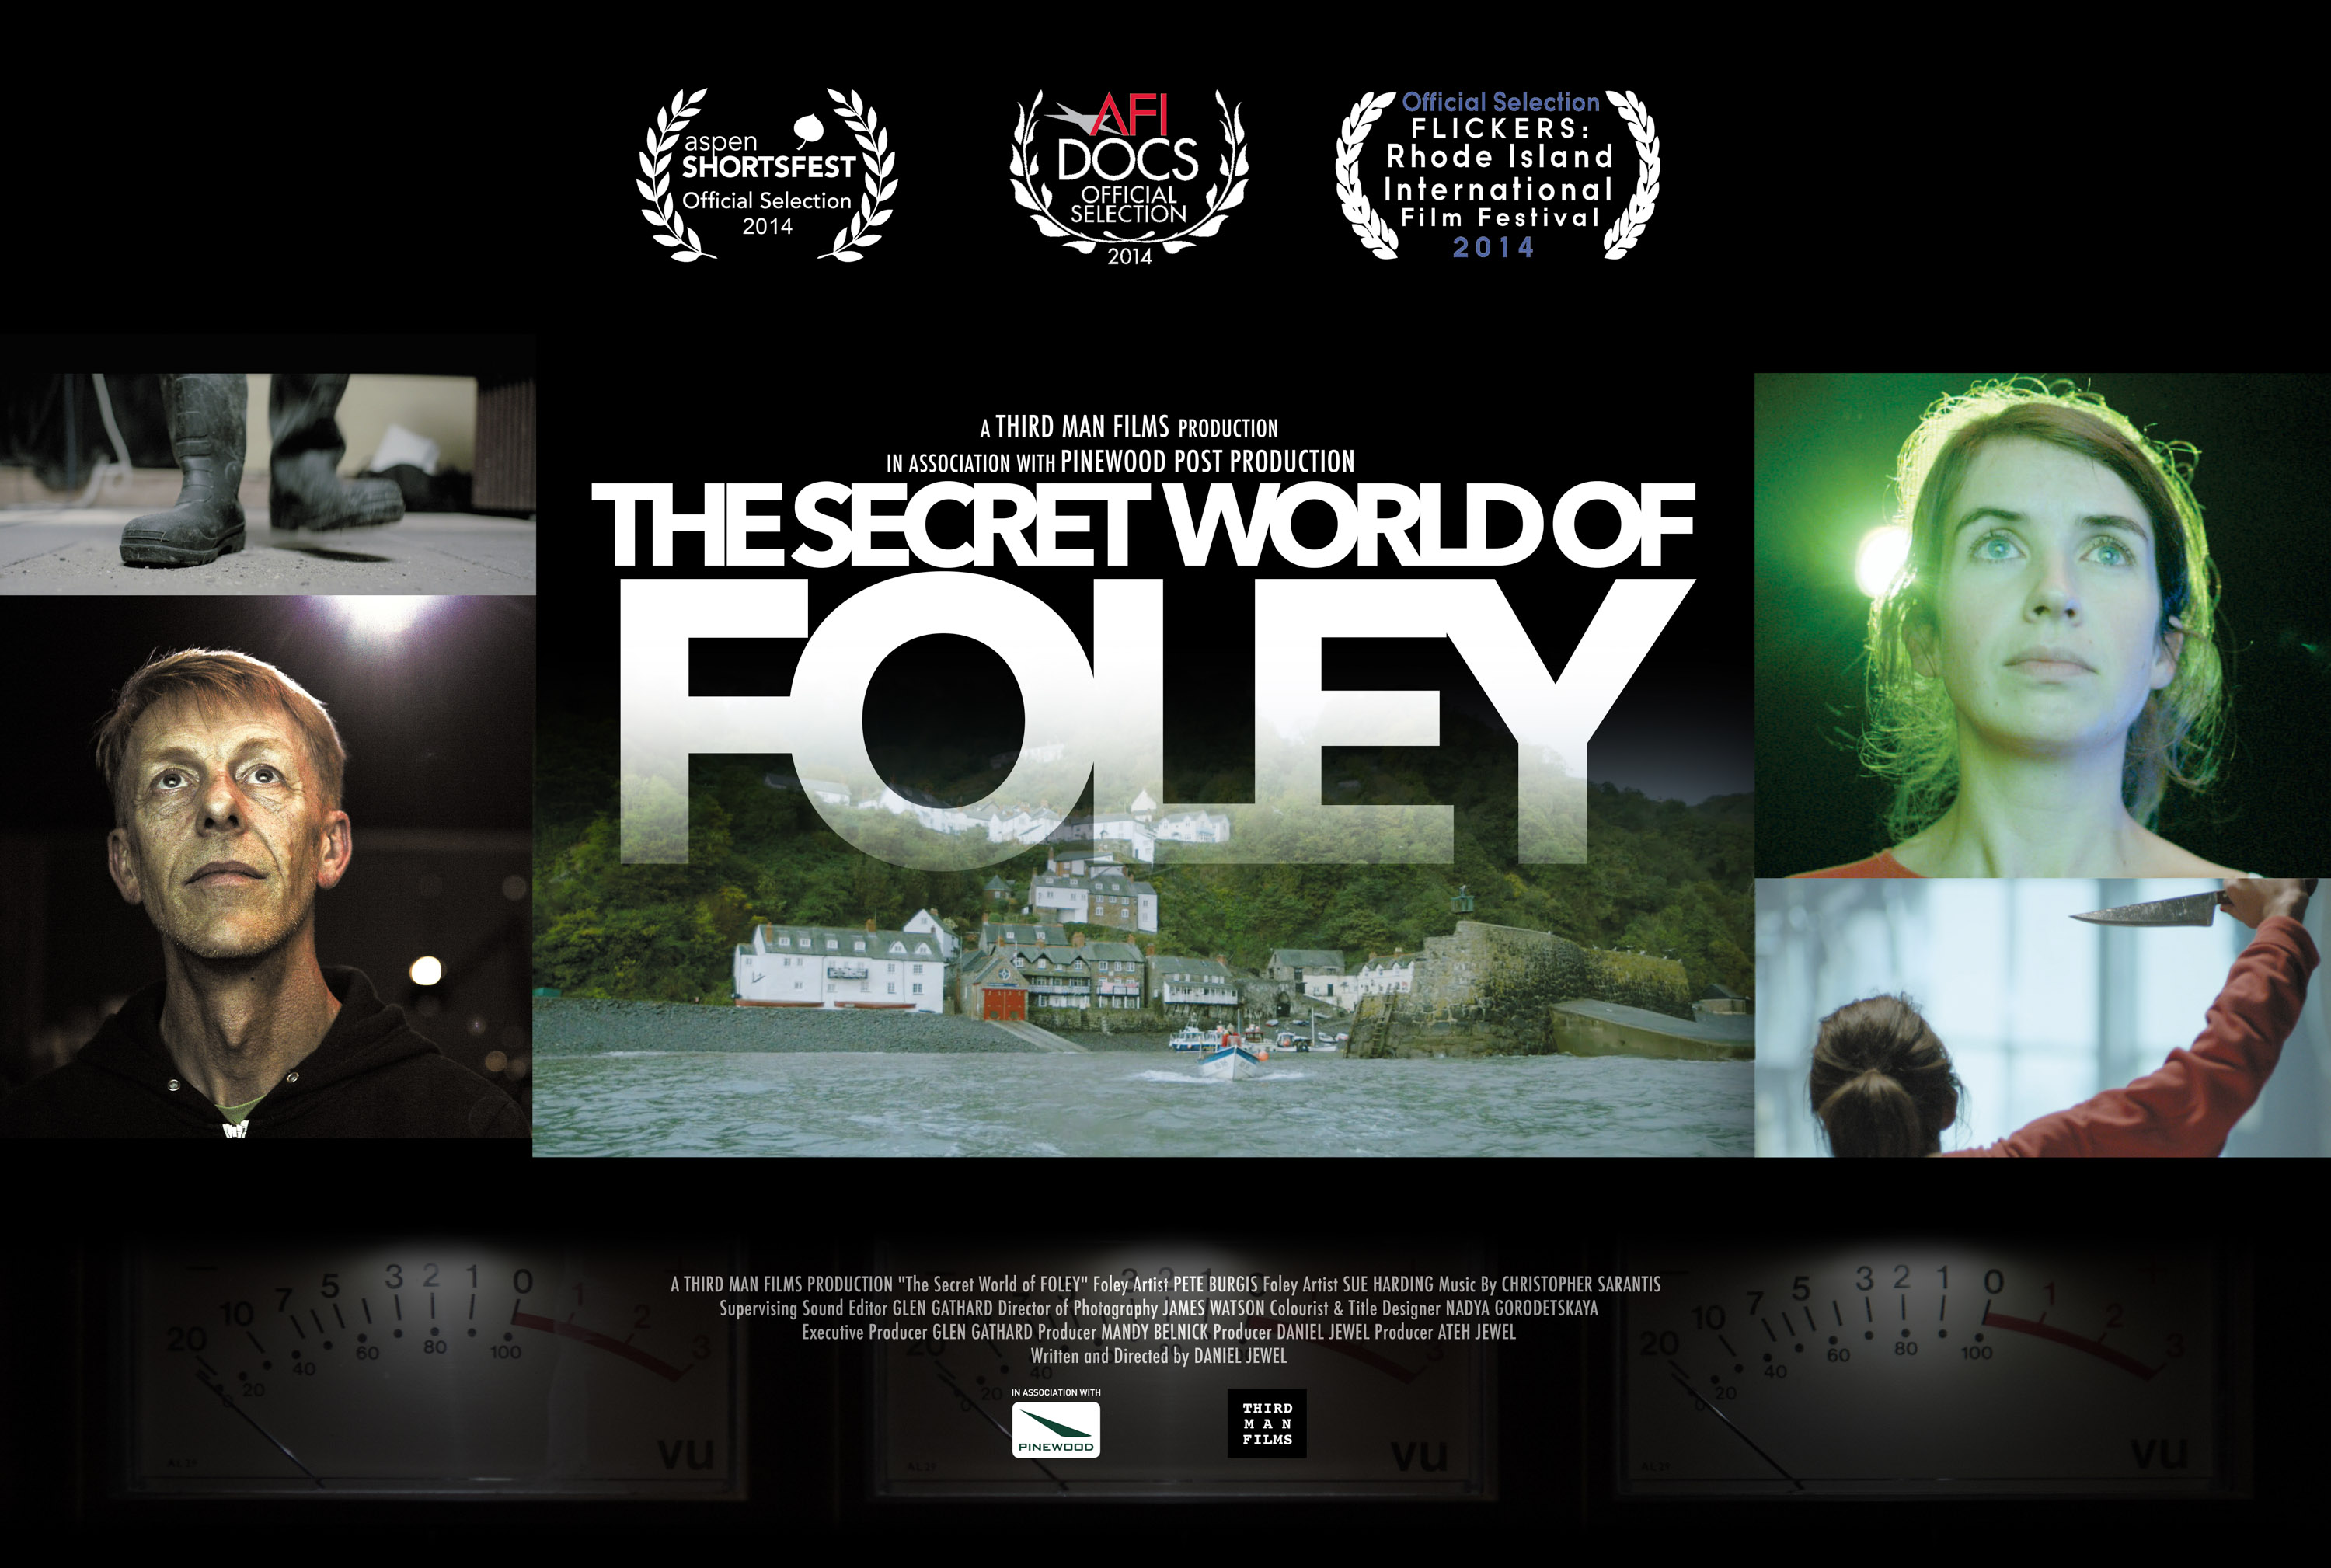 FOLEY_NEW_POSTER_wide_web